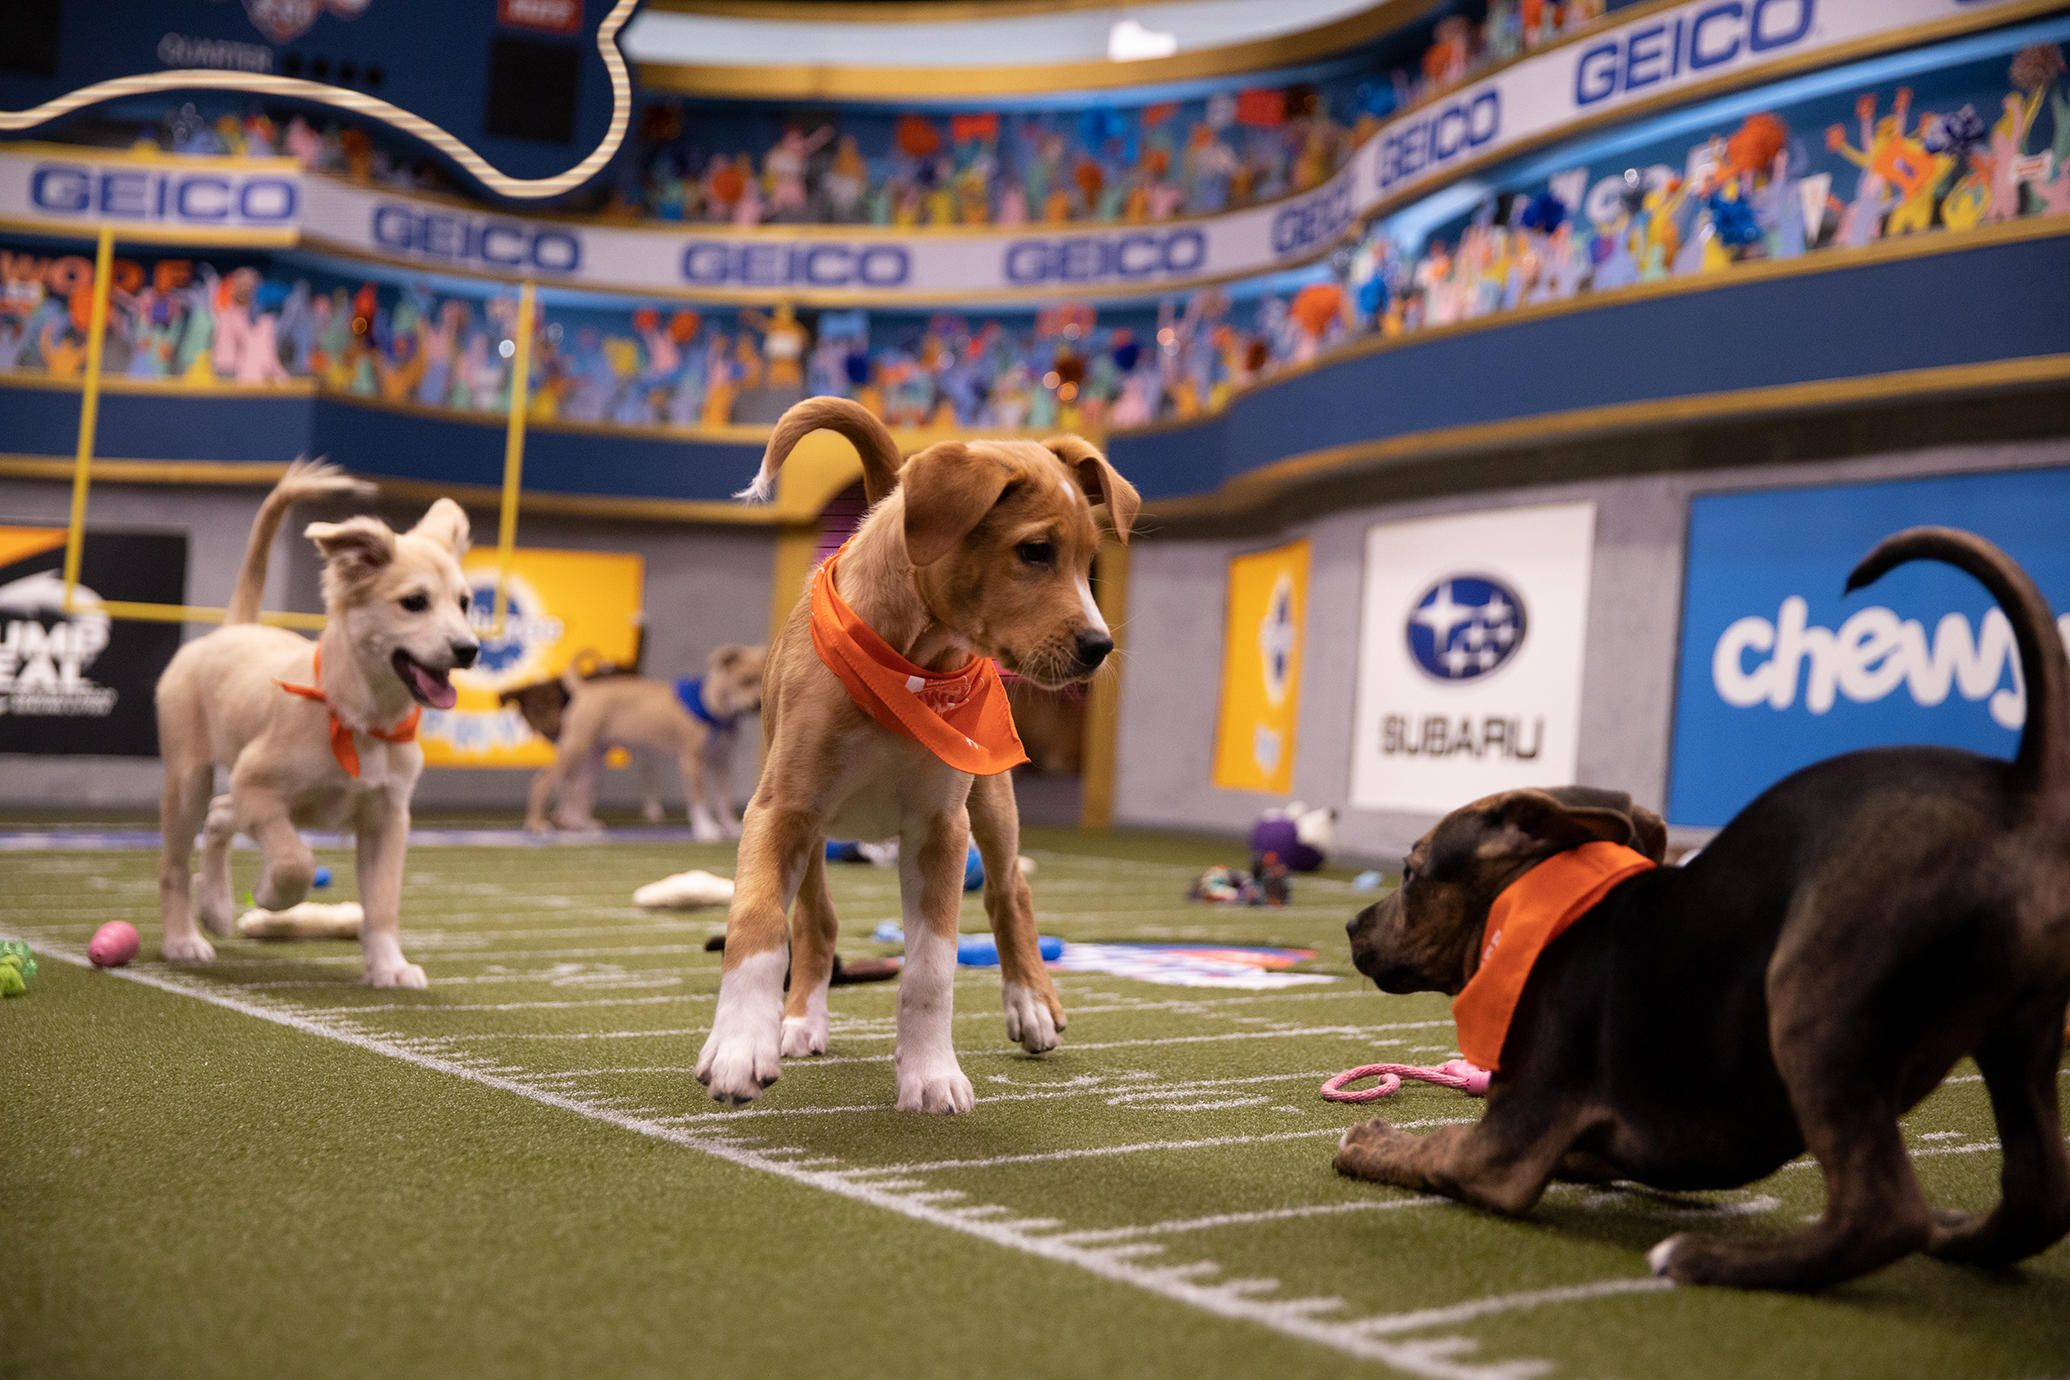 How To Watch The 2020 Puppy Bowl In 2020 Puppy Bowls Puppies Animal Planet